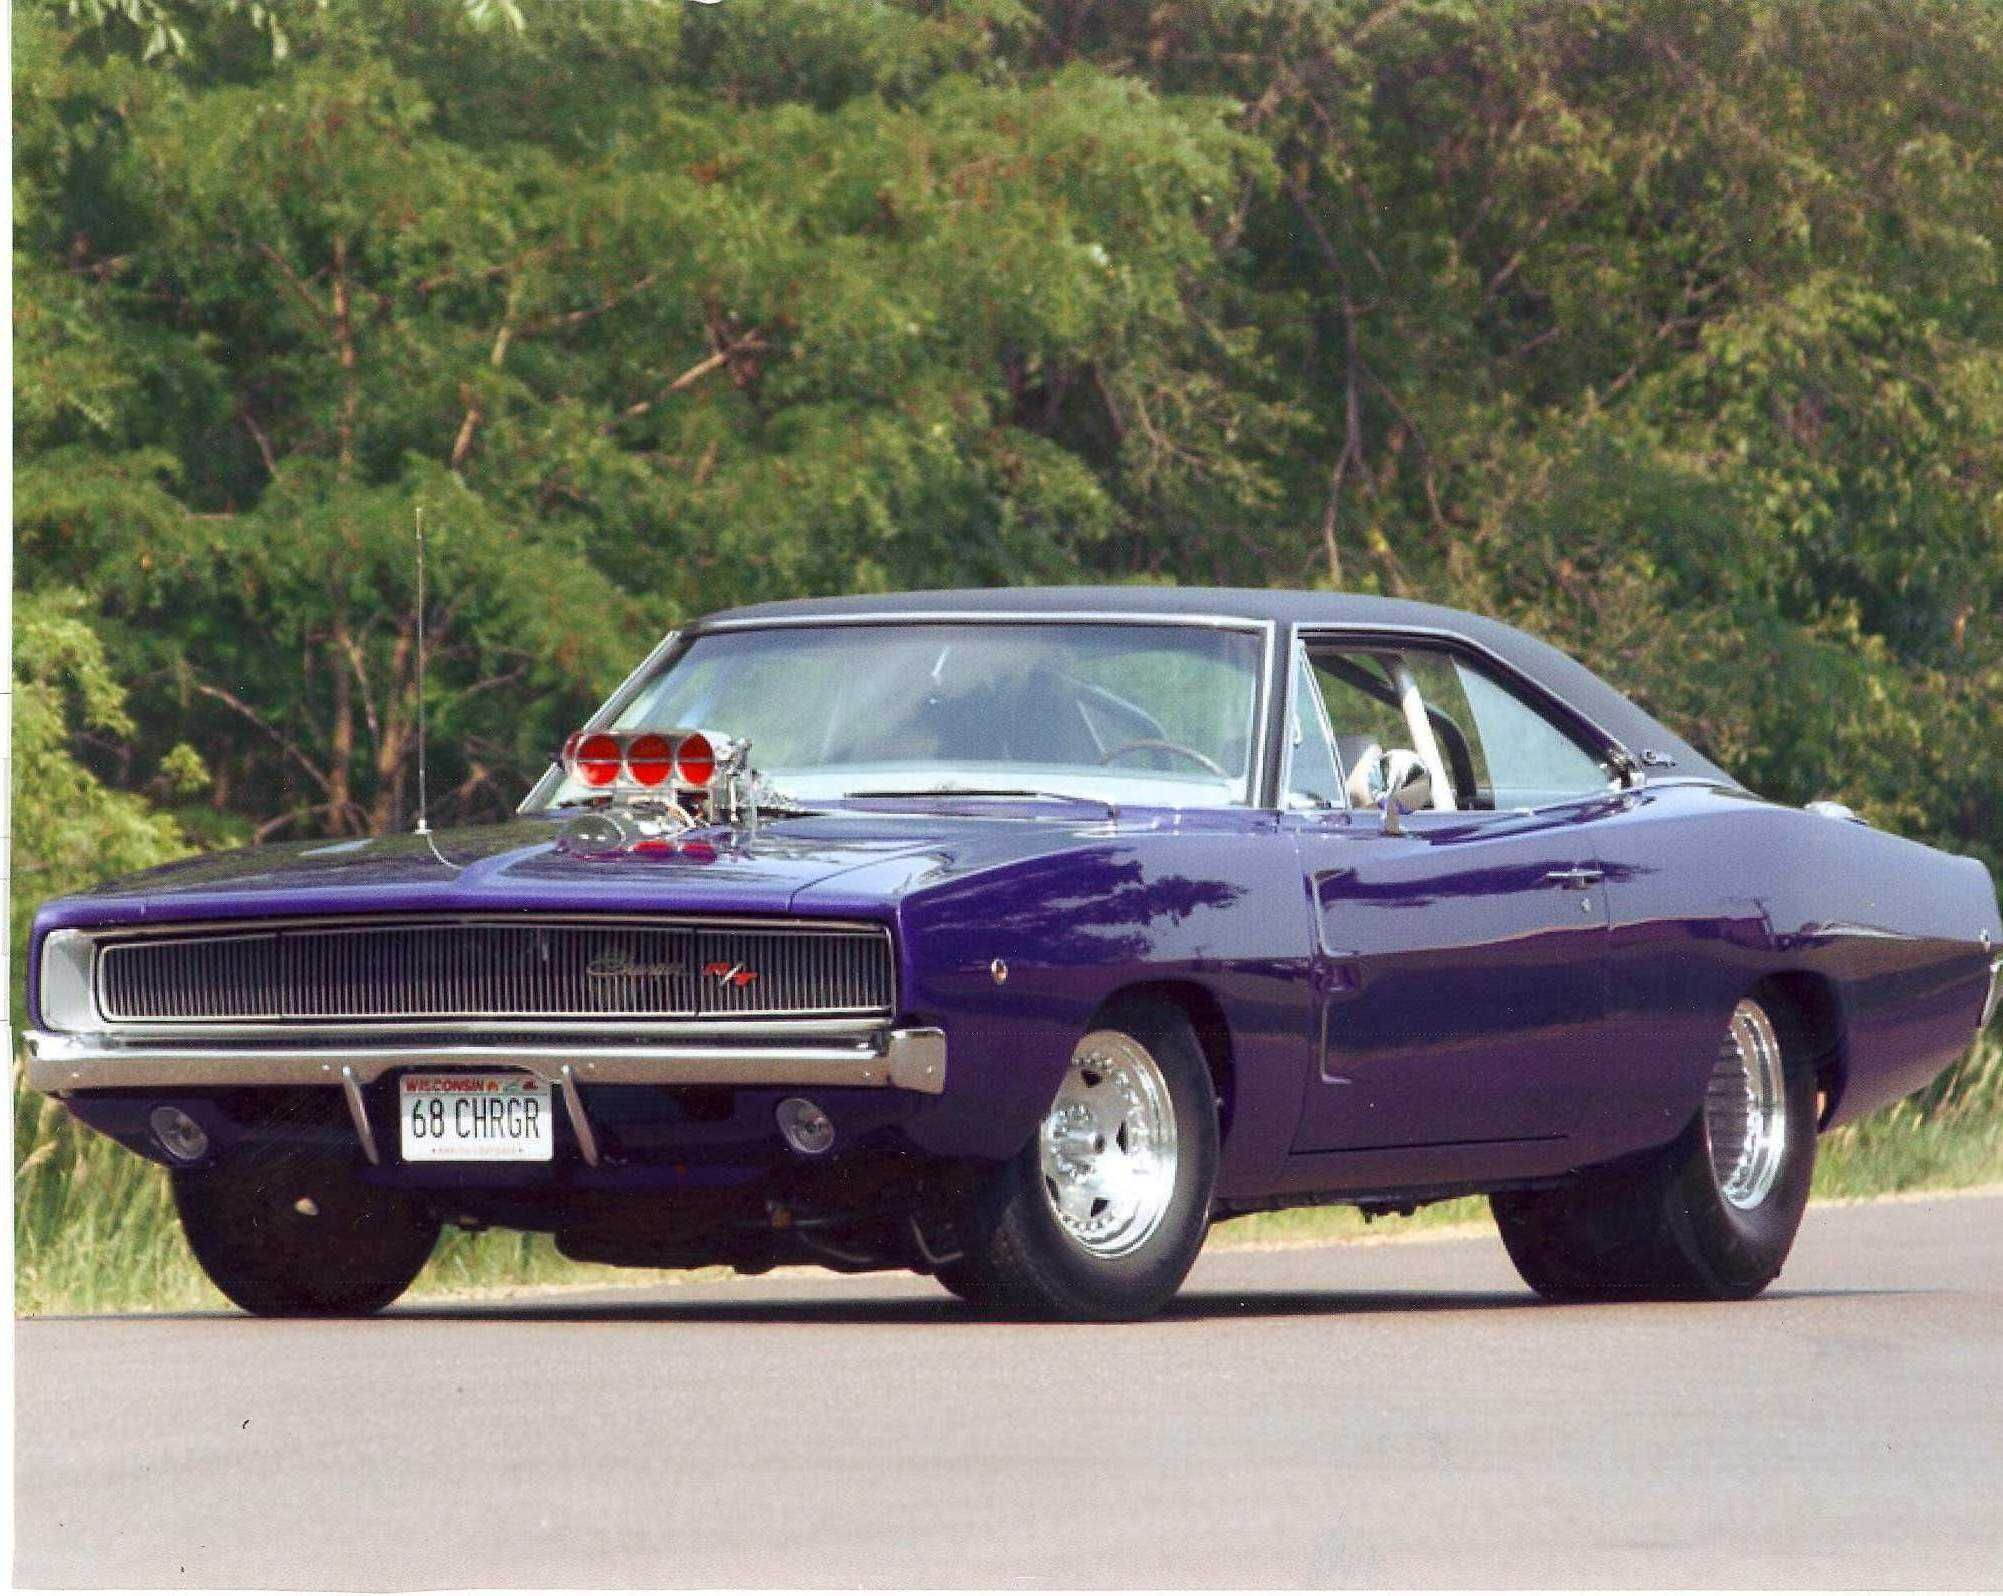 Old Muscle Cars Dodge Charger Wallpaper Mixhd Wallpapers Daytona